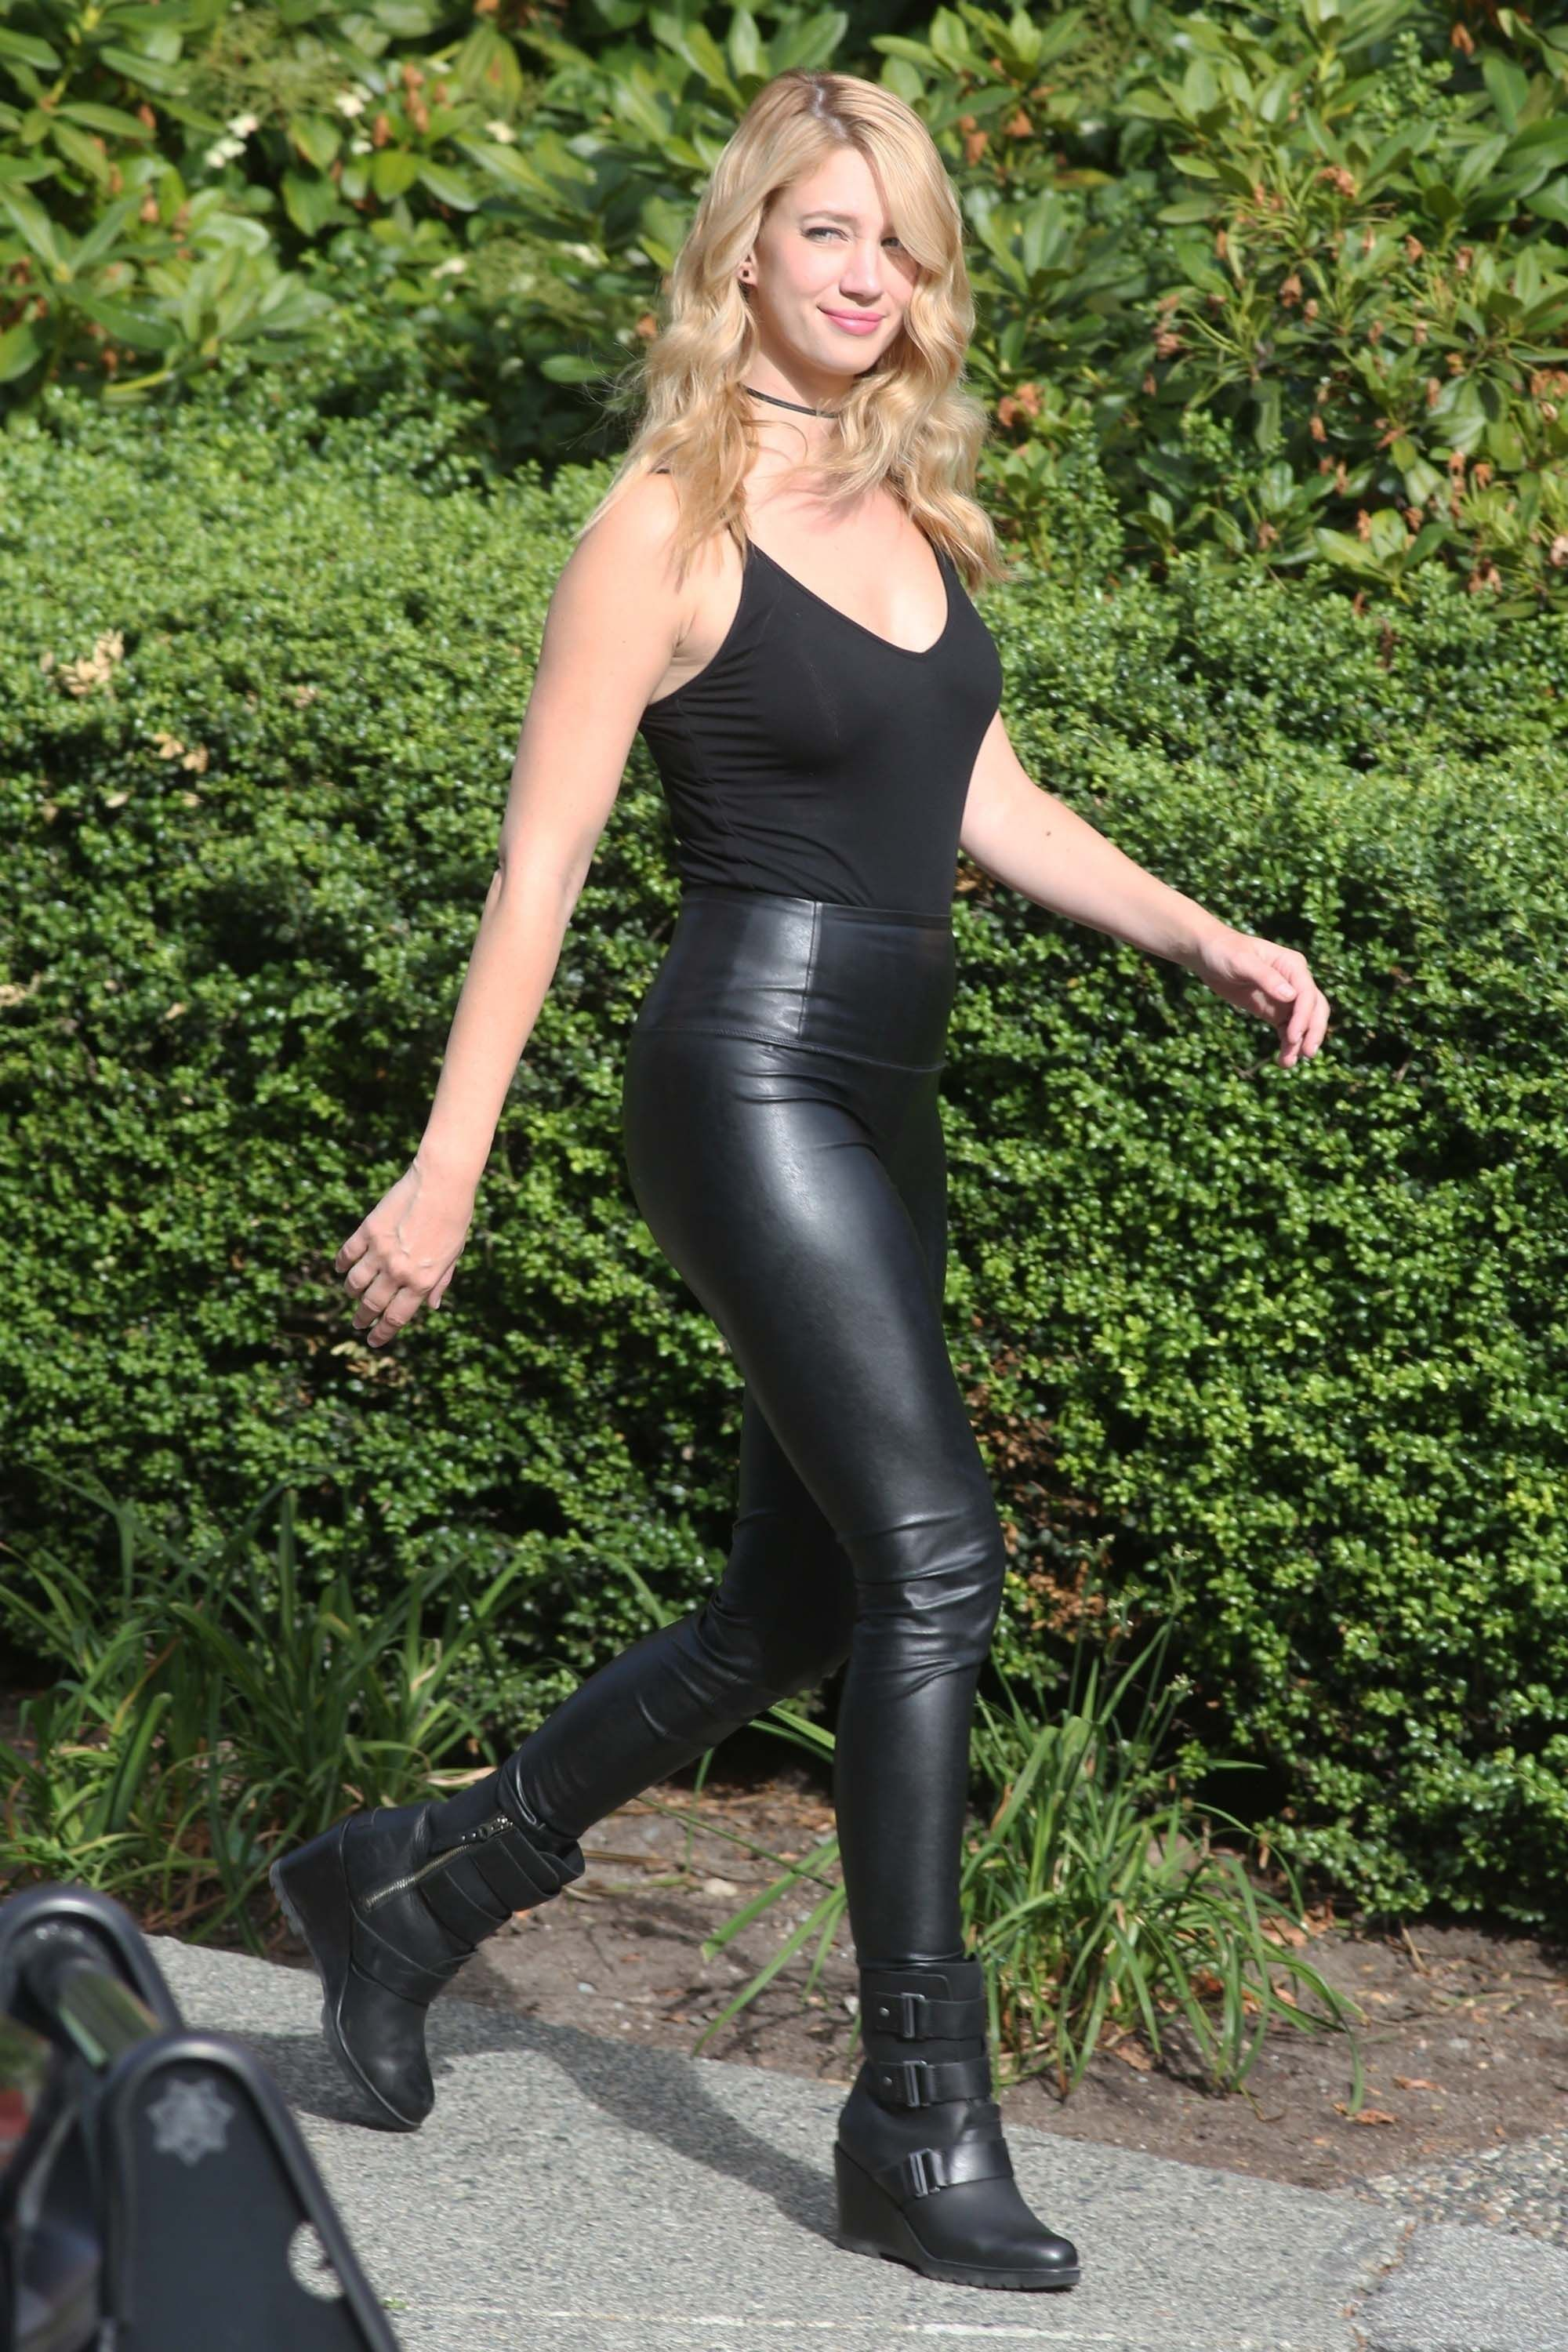 f79fbb39a7a17f Melissa Benoist and Yael Grobglas duel on the set of  Supergirl  Leather  Jeans